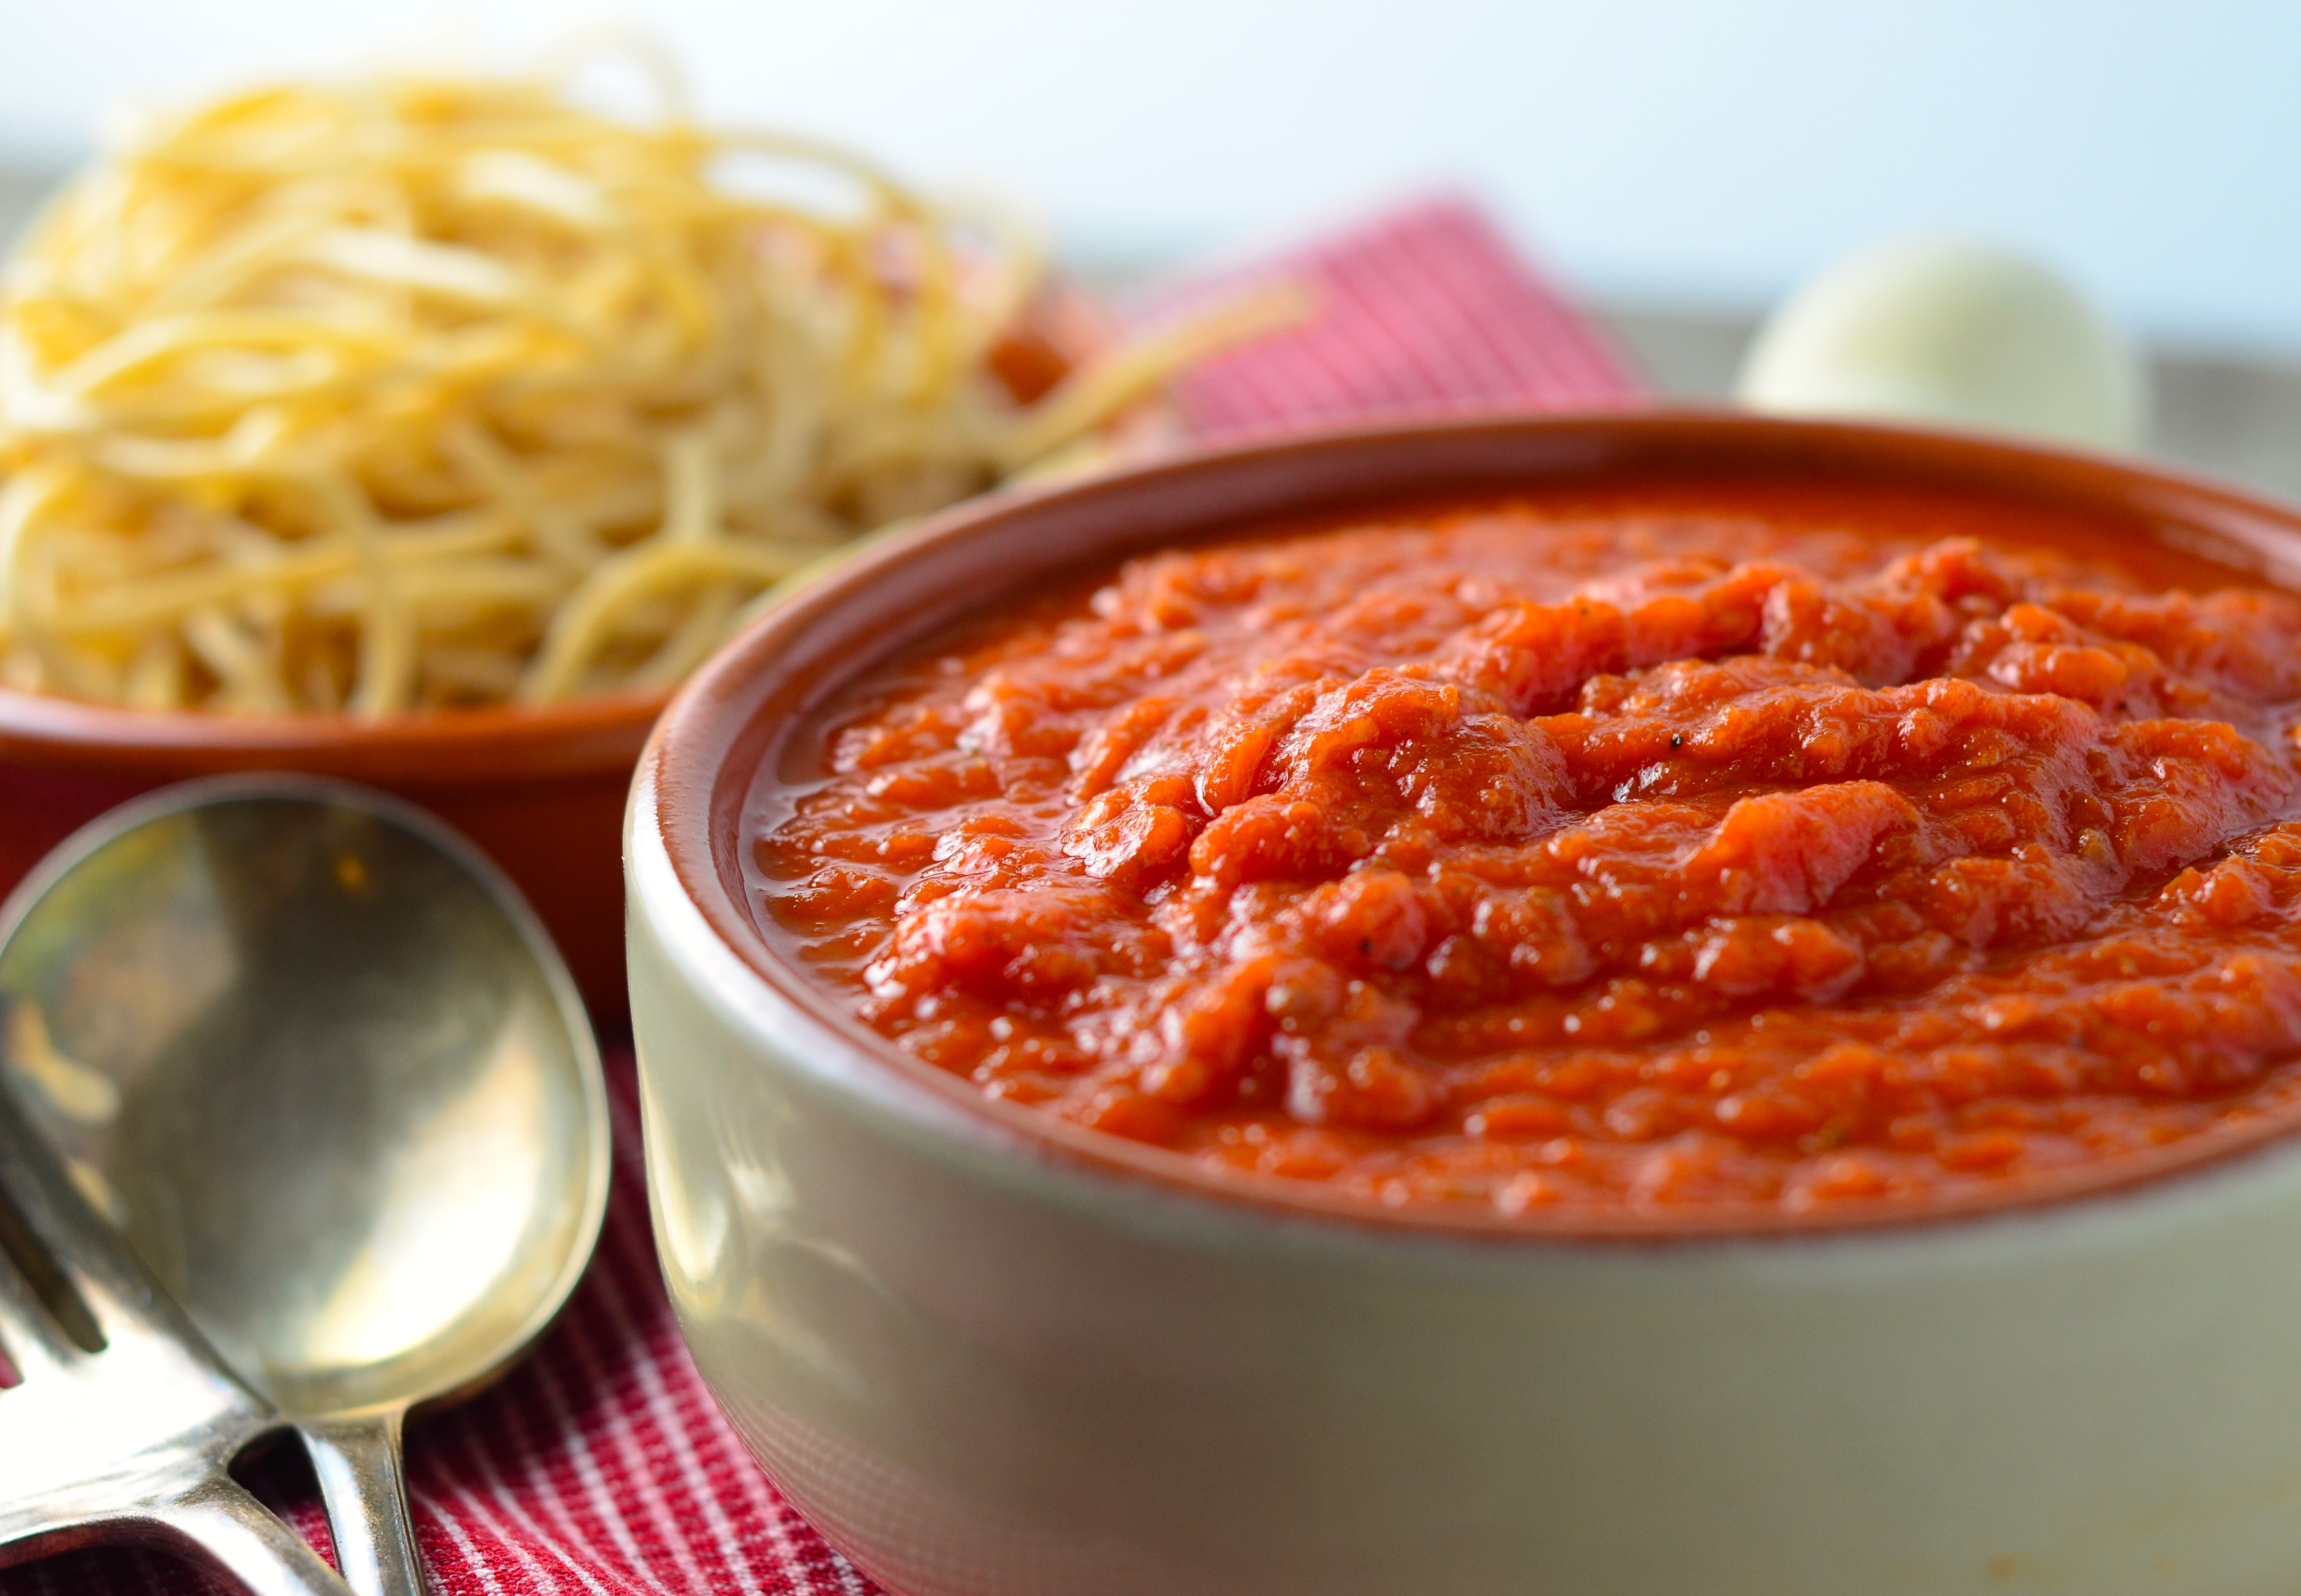 Slow-Simmered Spaghetti Sauce